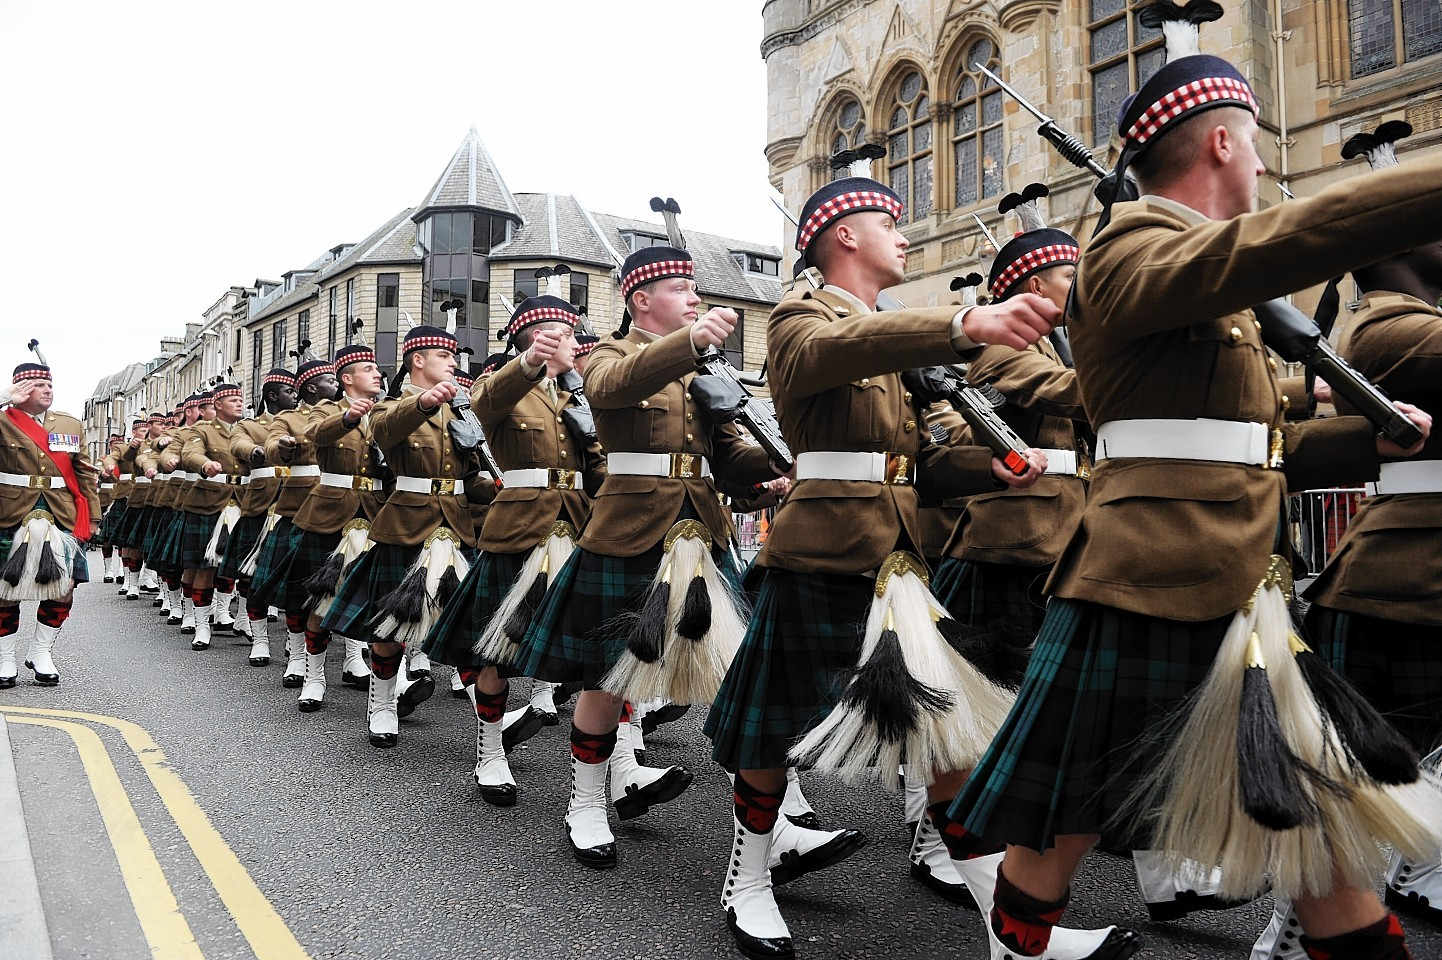 The traditional Inverness Armed Forces Parade was replaced in 2016 with other events to showcase local military heroes.